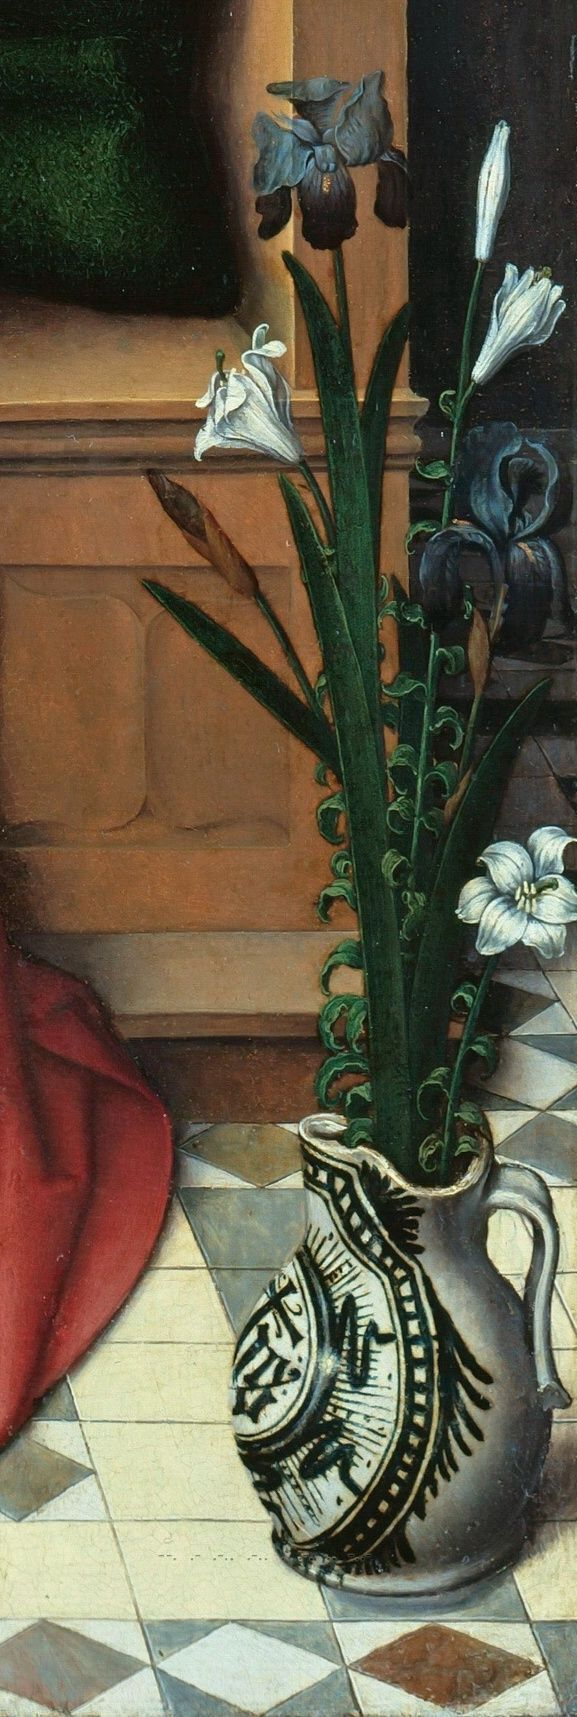 Hans Memling (1433-35 - 1494) - Enthroned Madonna with Child detail